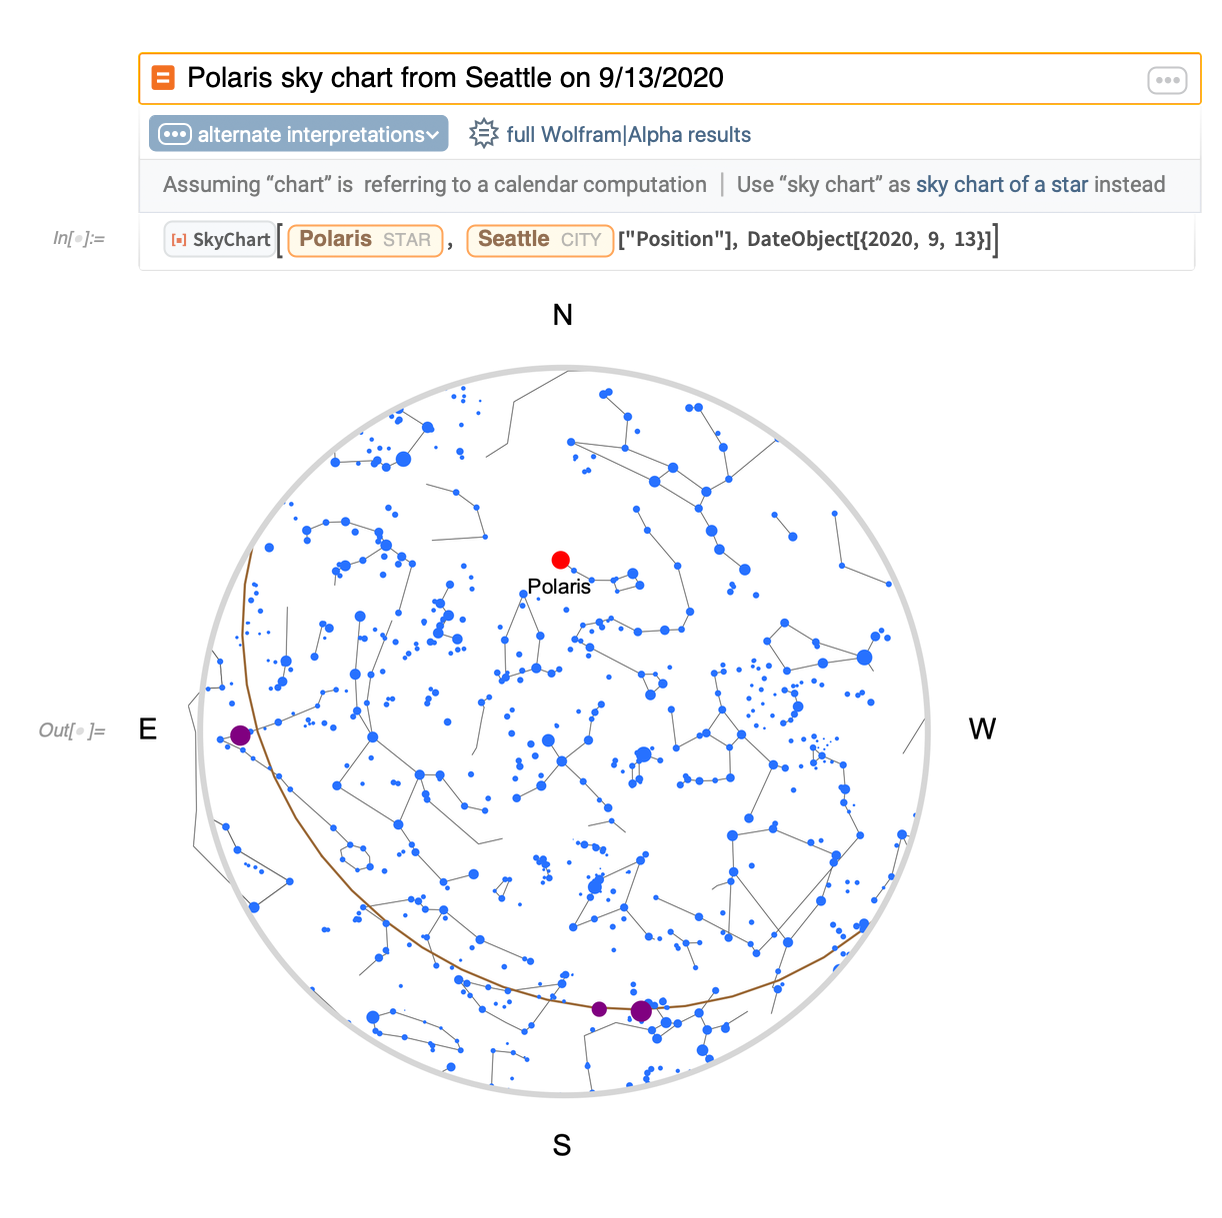 Polaris sky chart from Seattle on 9/13/2020